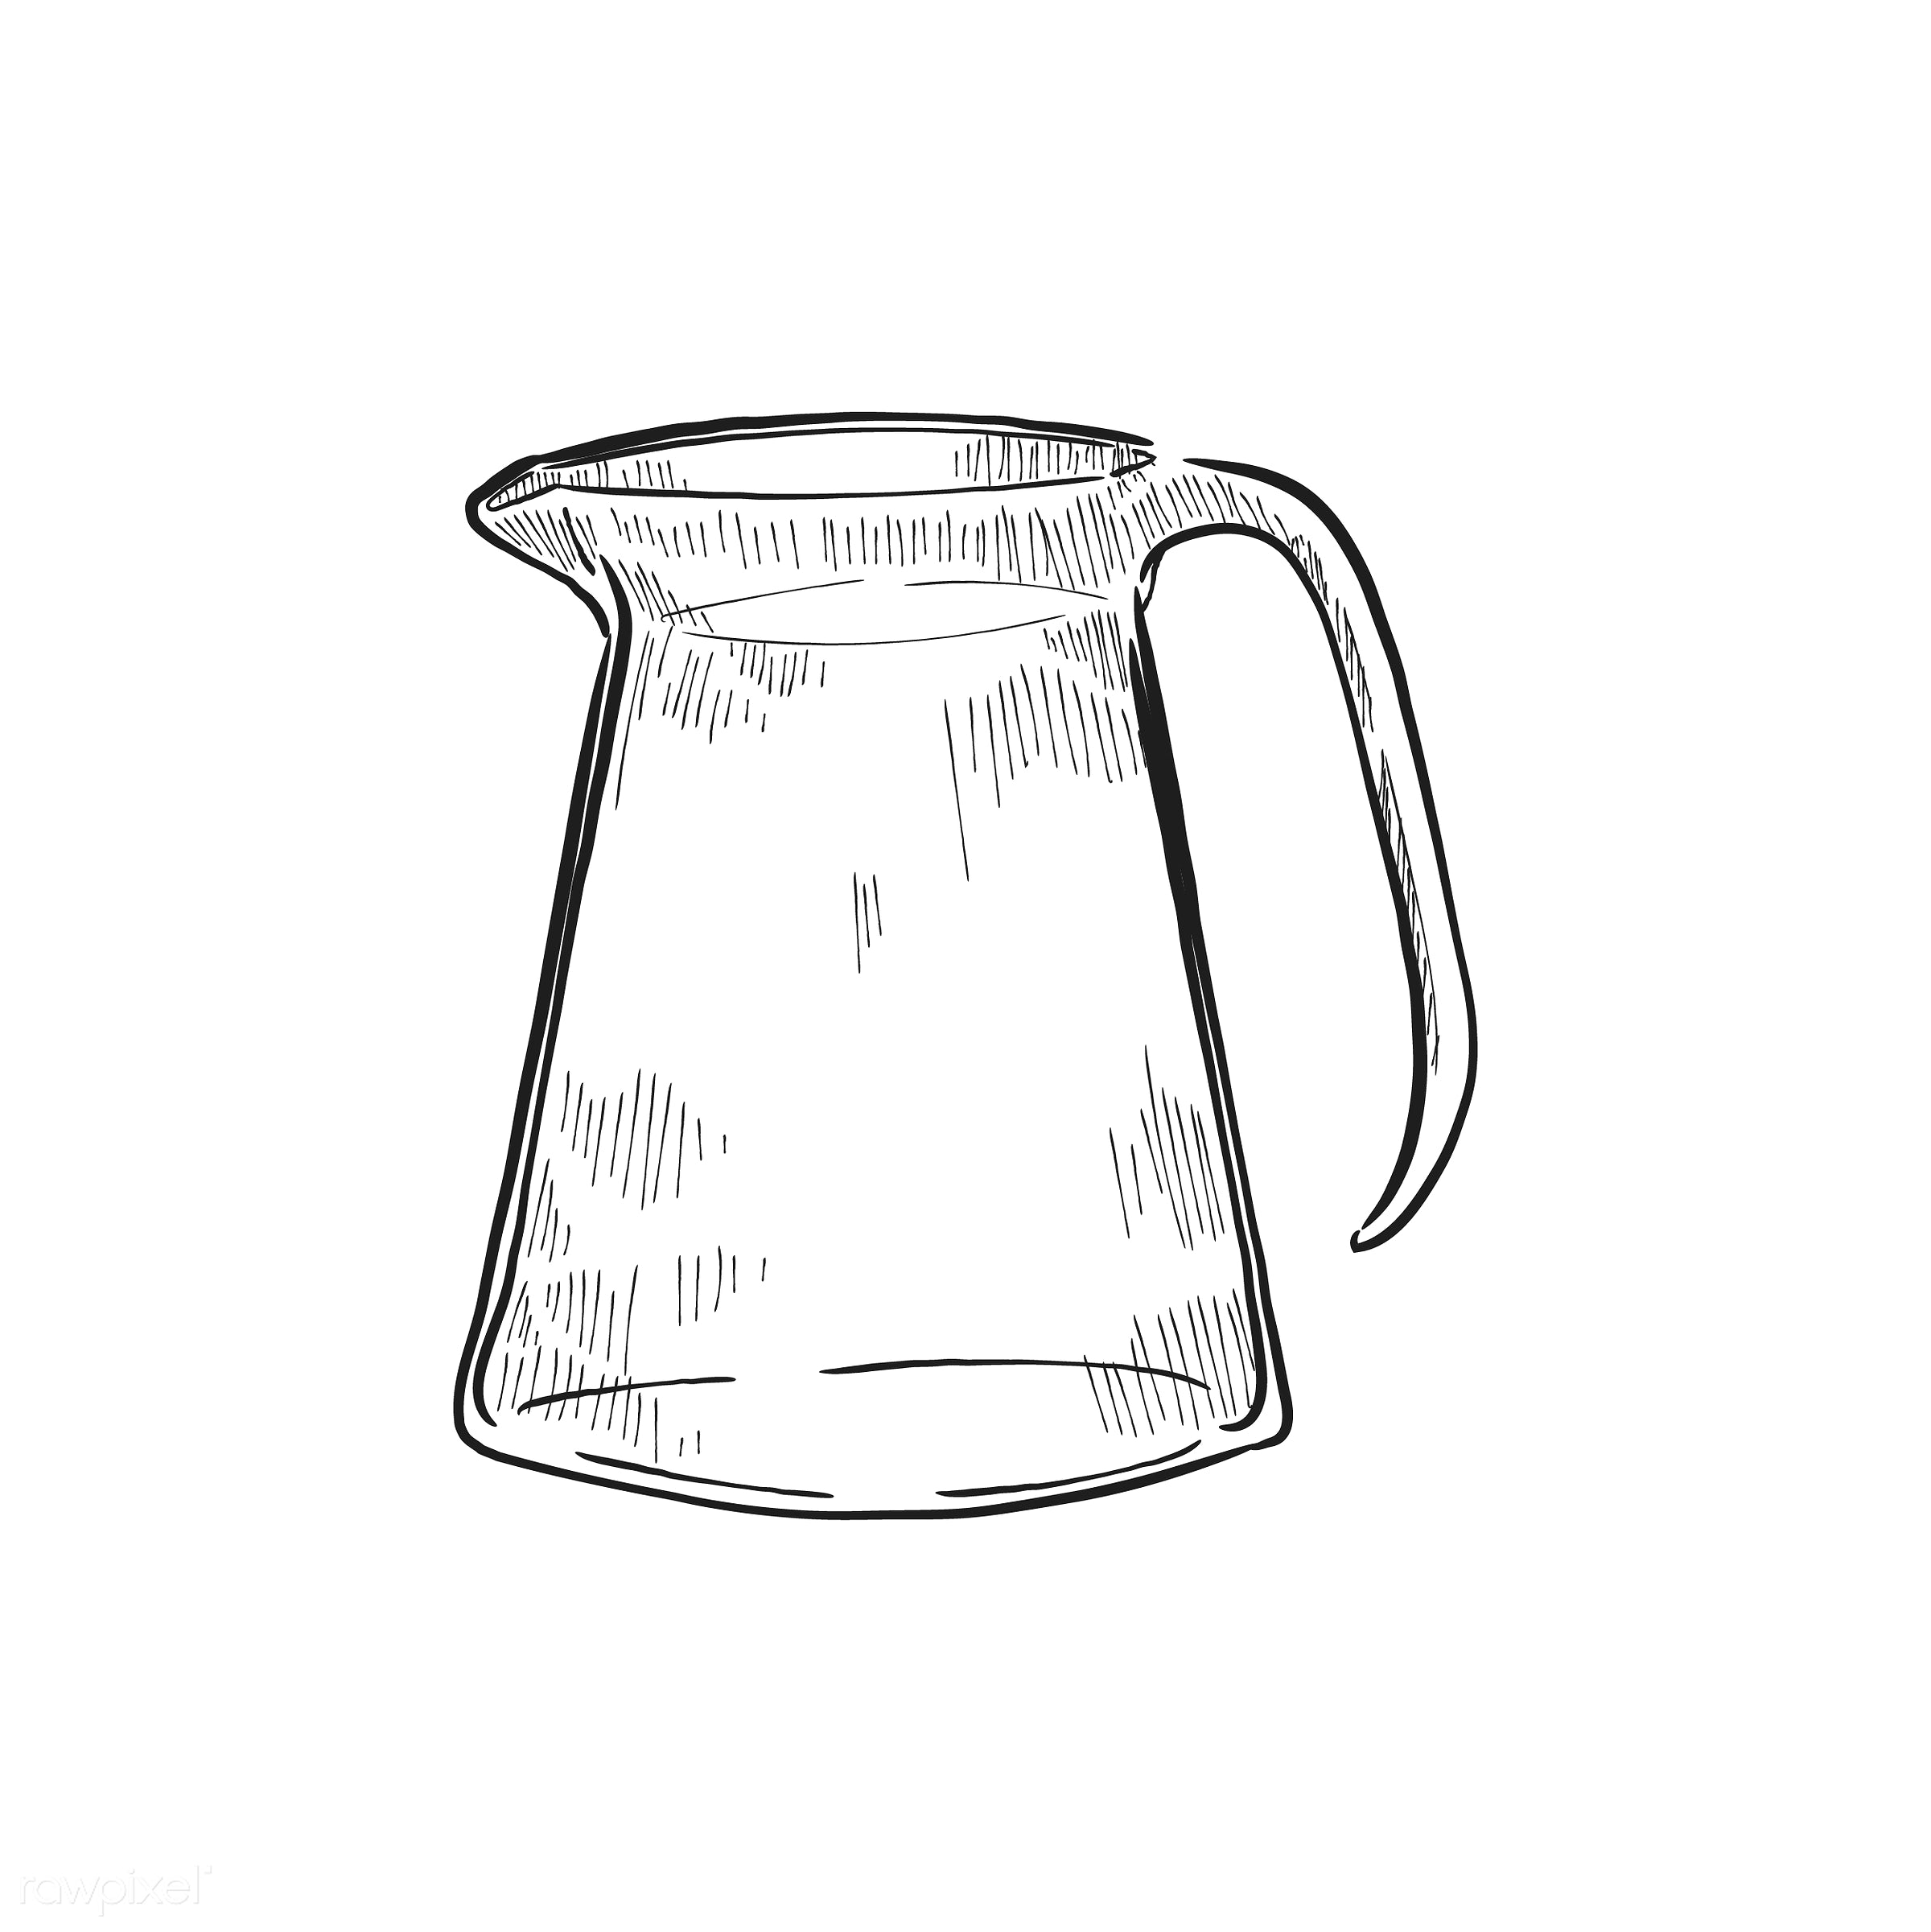 Vintage illustration of a pitcher - antique, aroma, beverage, black, cafe, coffee, coffee pot, coffee shop, design, drawing...